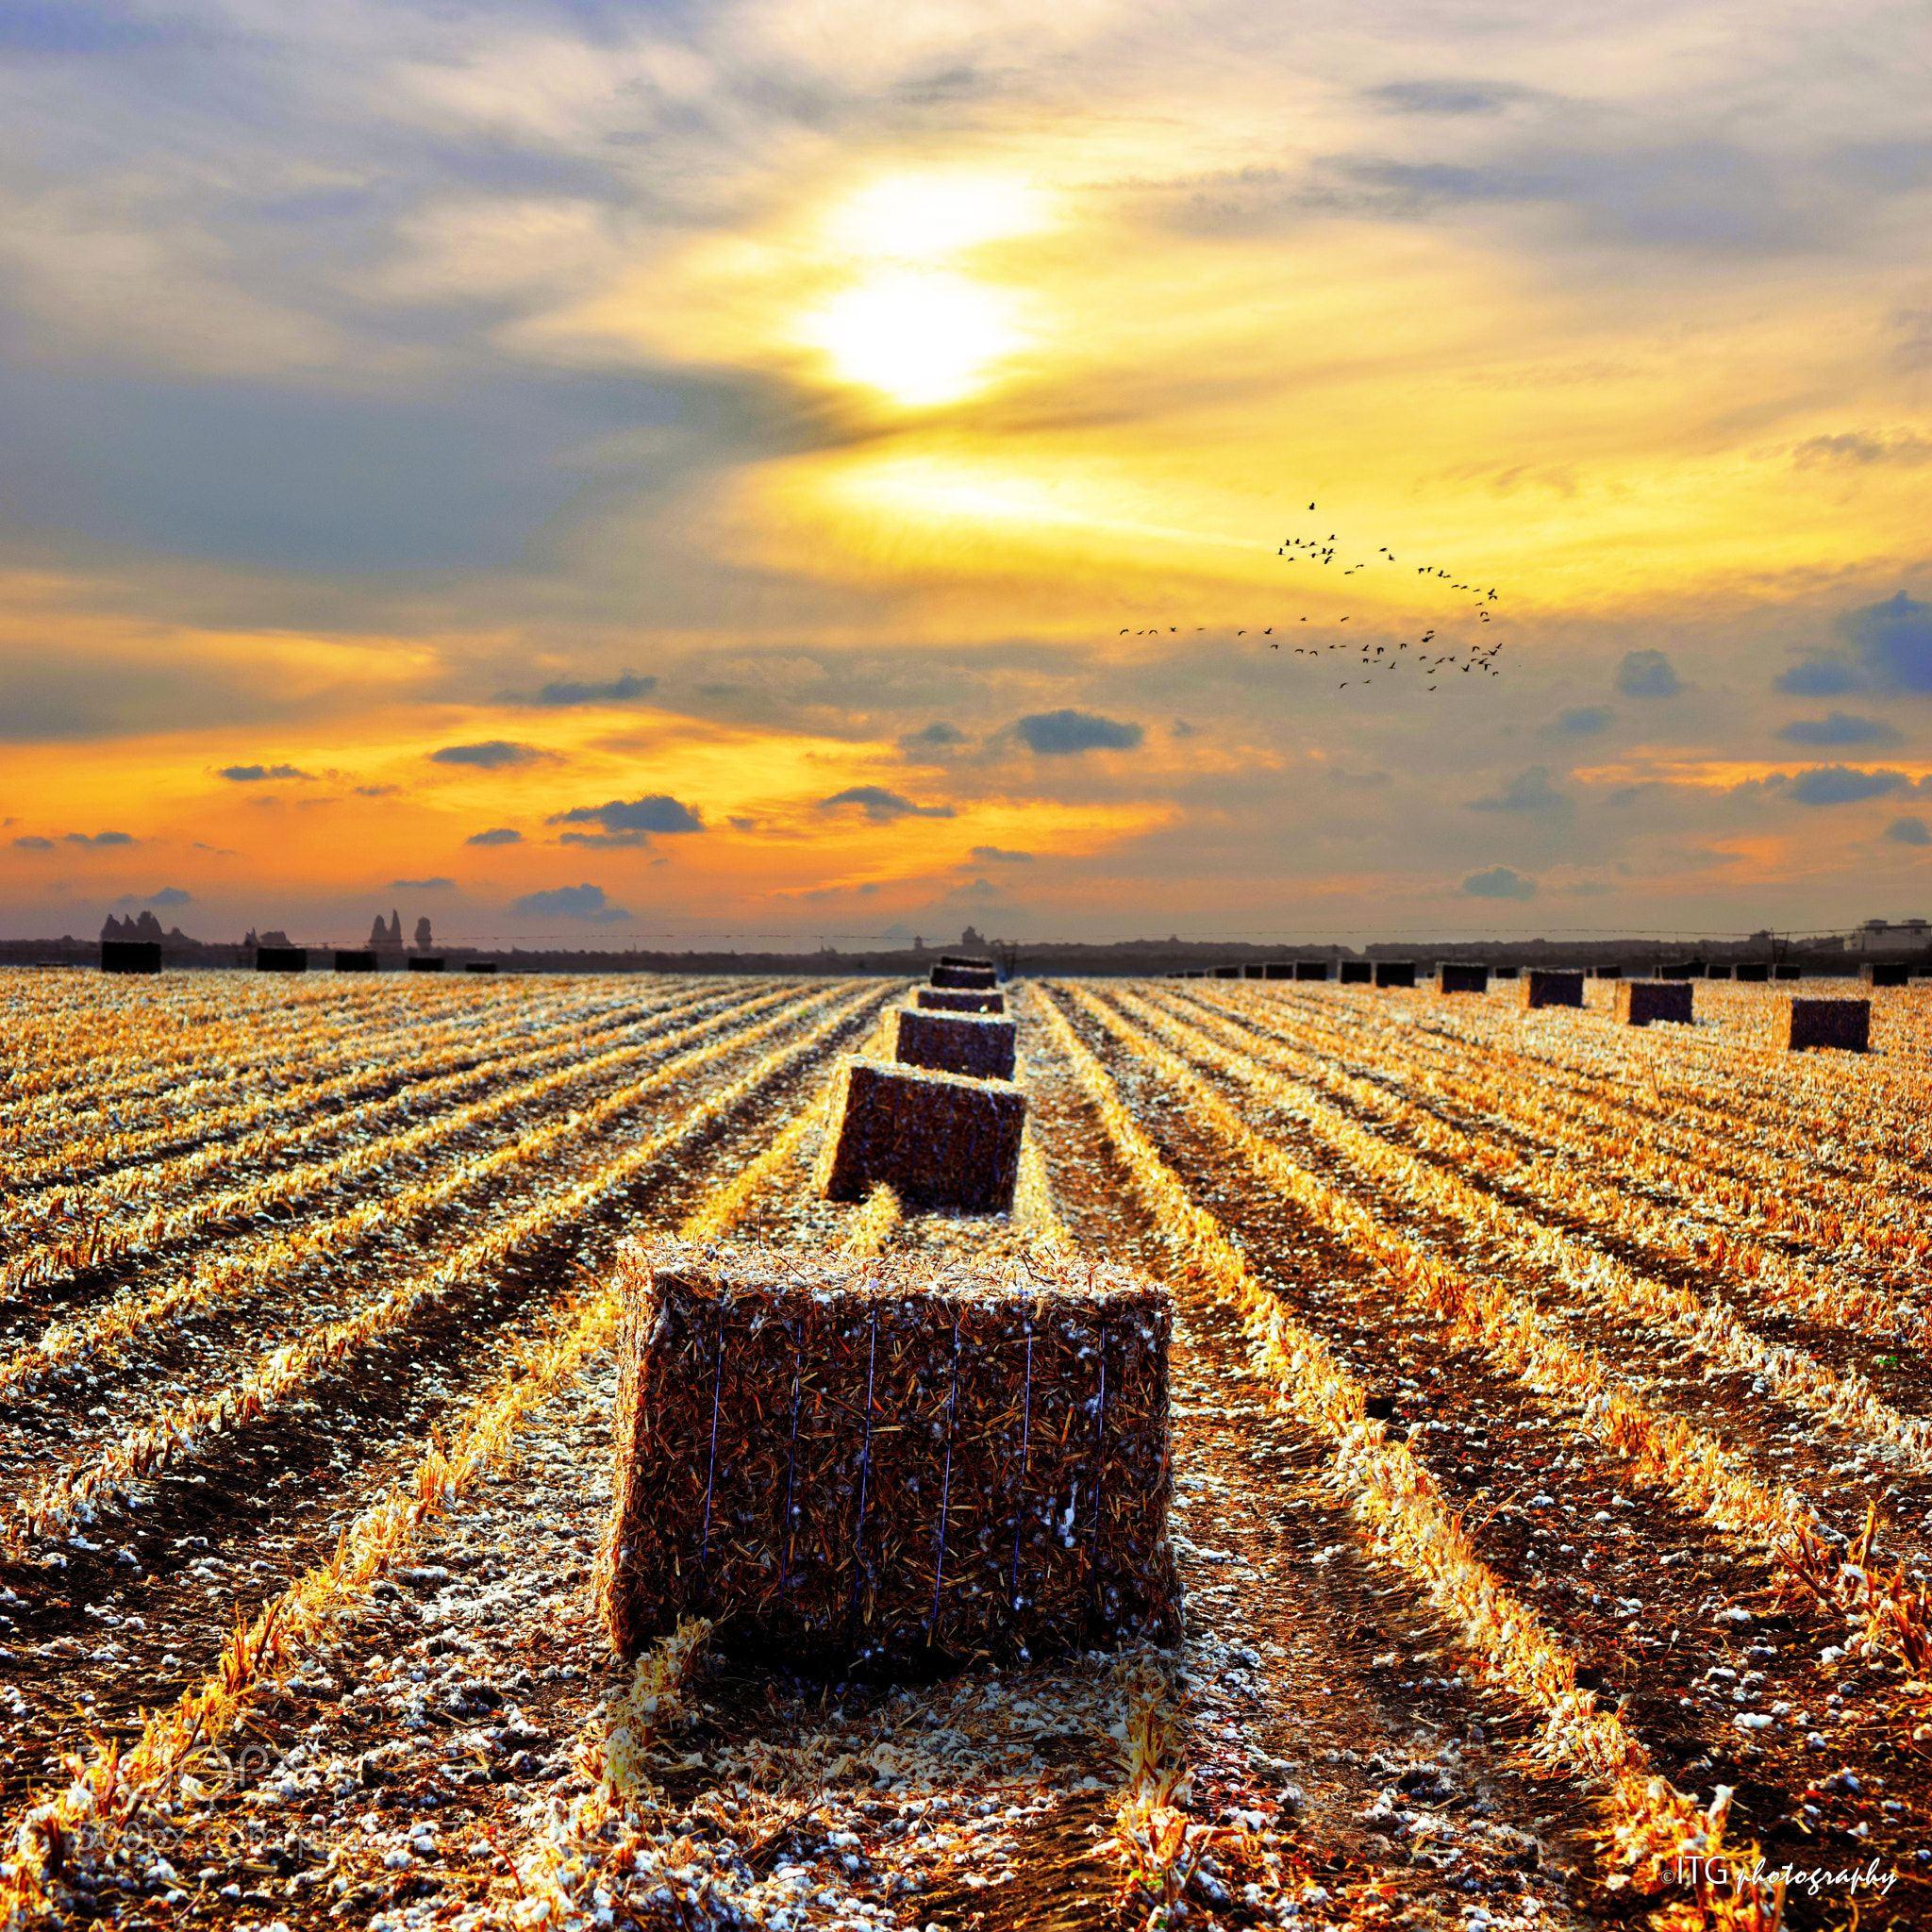 Harvested cotton field at sunset by itgphotography